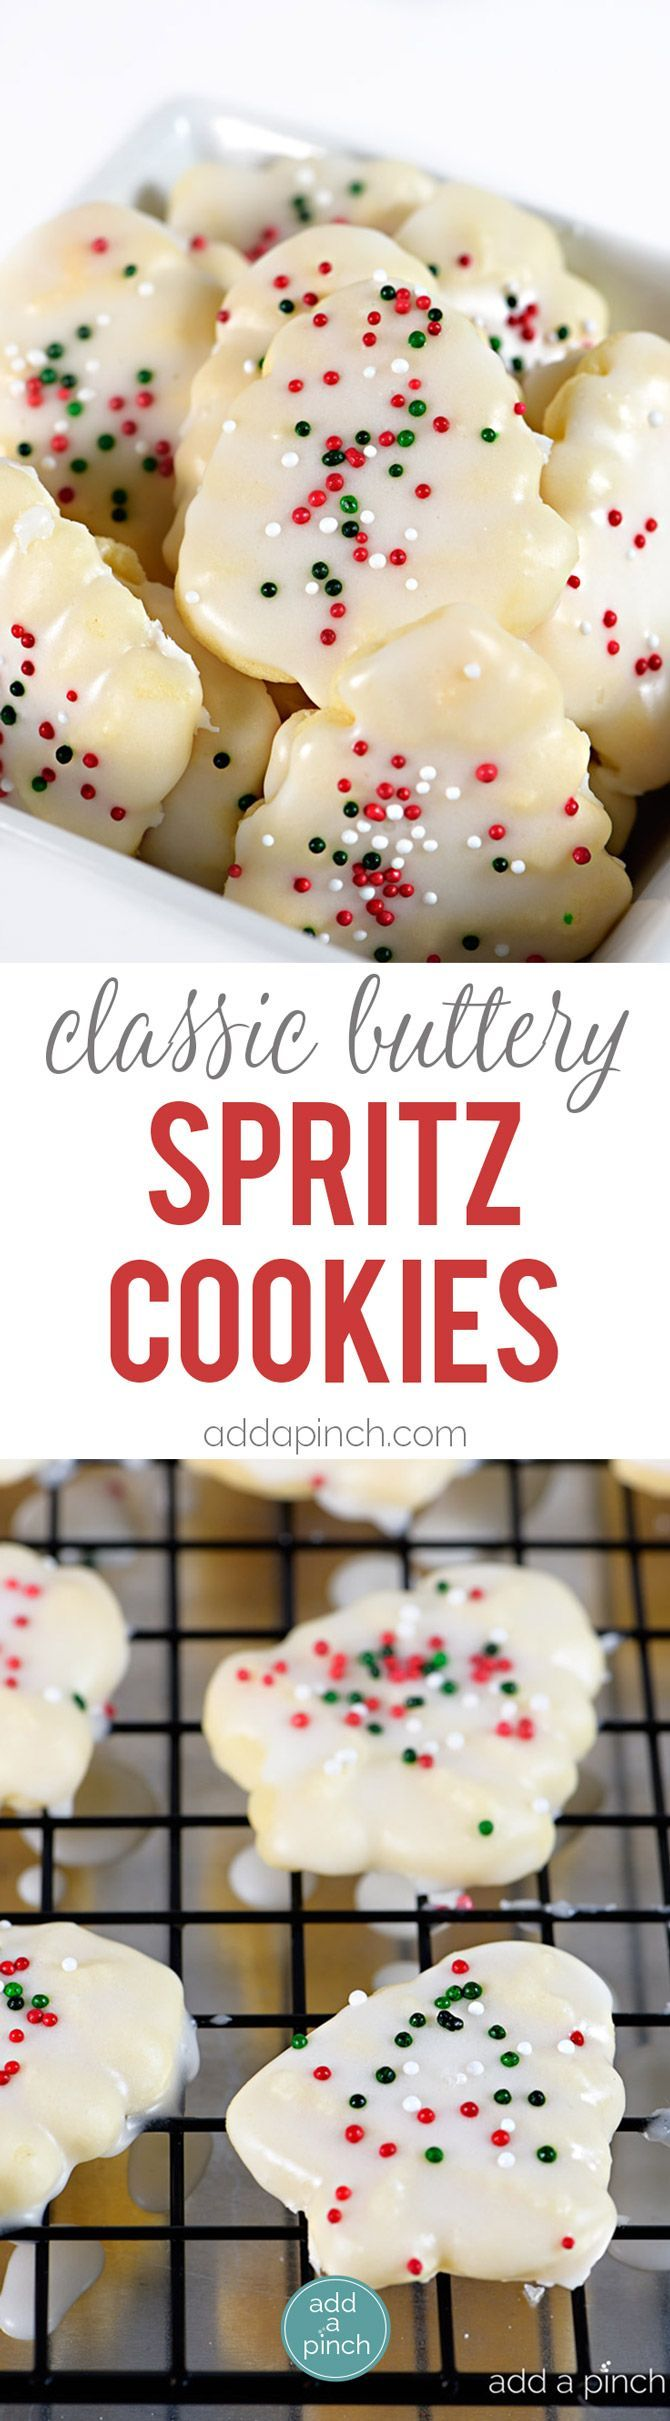 Classic Buttery Spritz Cookies make an easy delicious buttery cookie that comes together quickly! Perfect for special occasions and holidays, these spritz cookies are a favorite! // addapinch.com (Christmas Bake Exchange)